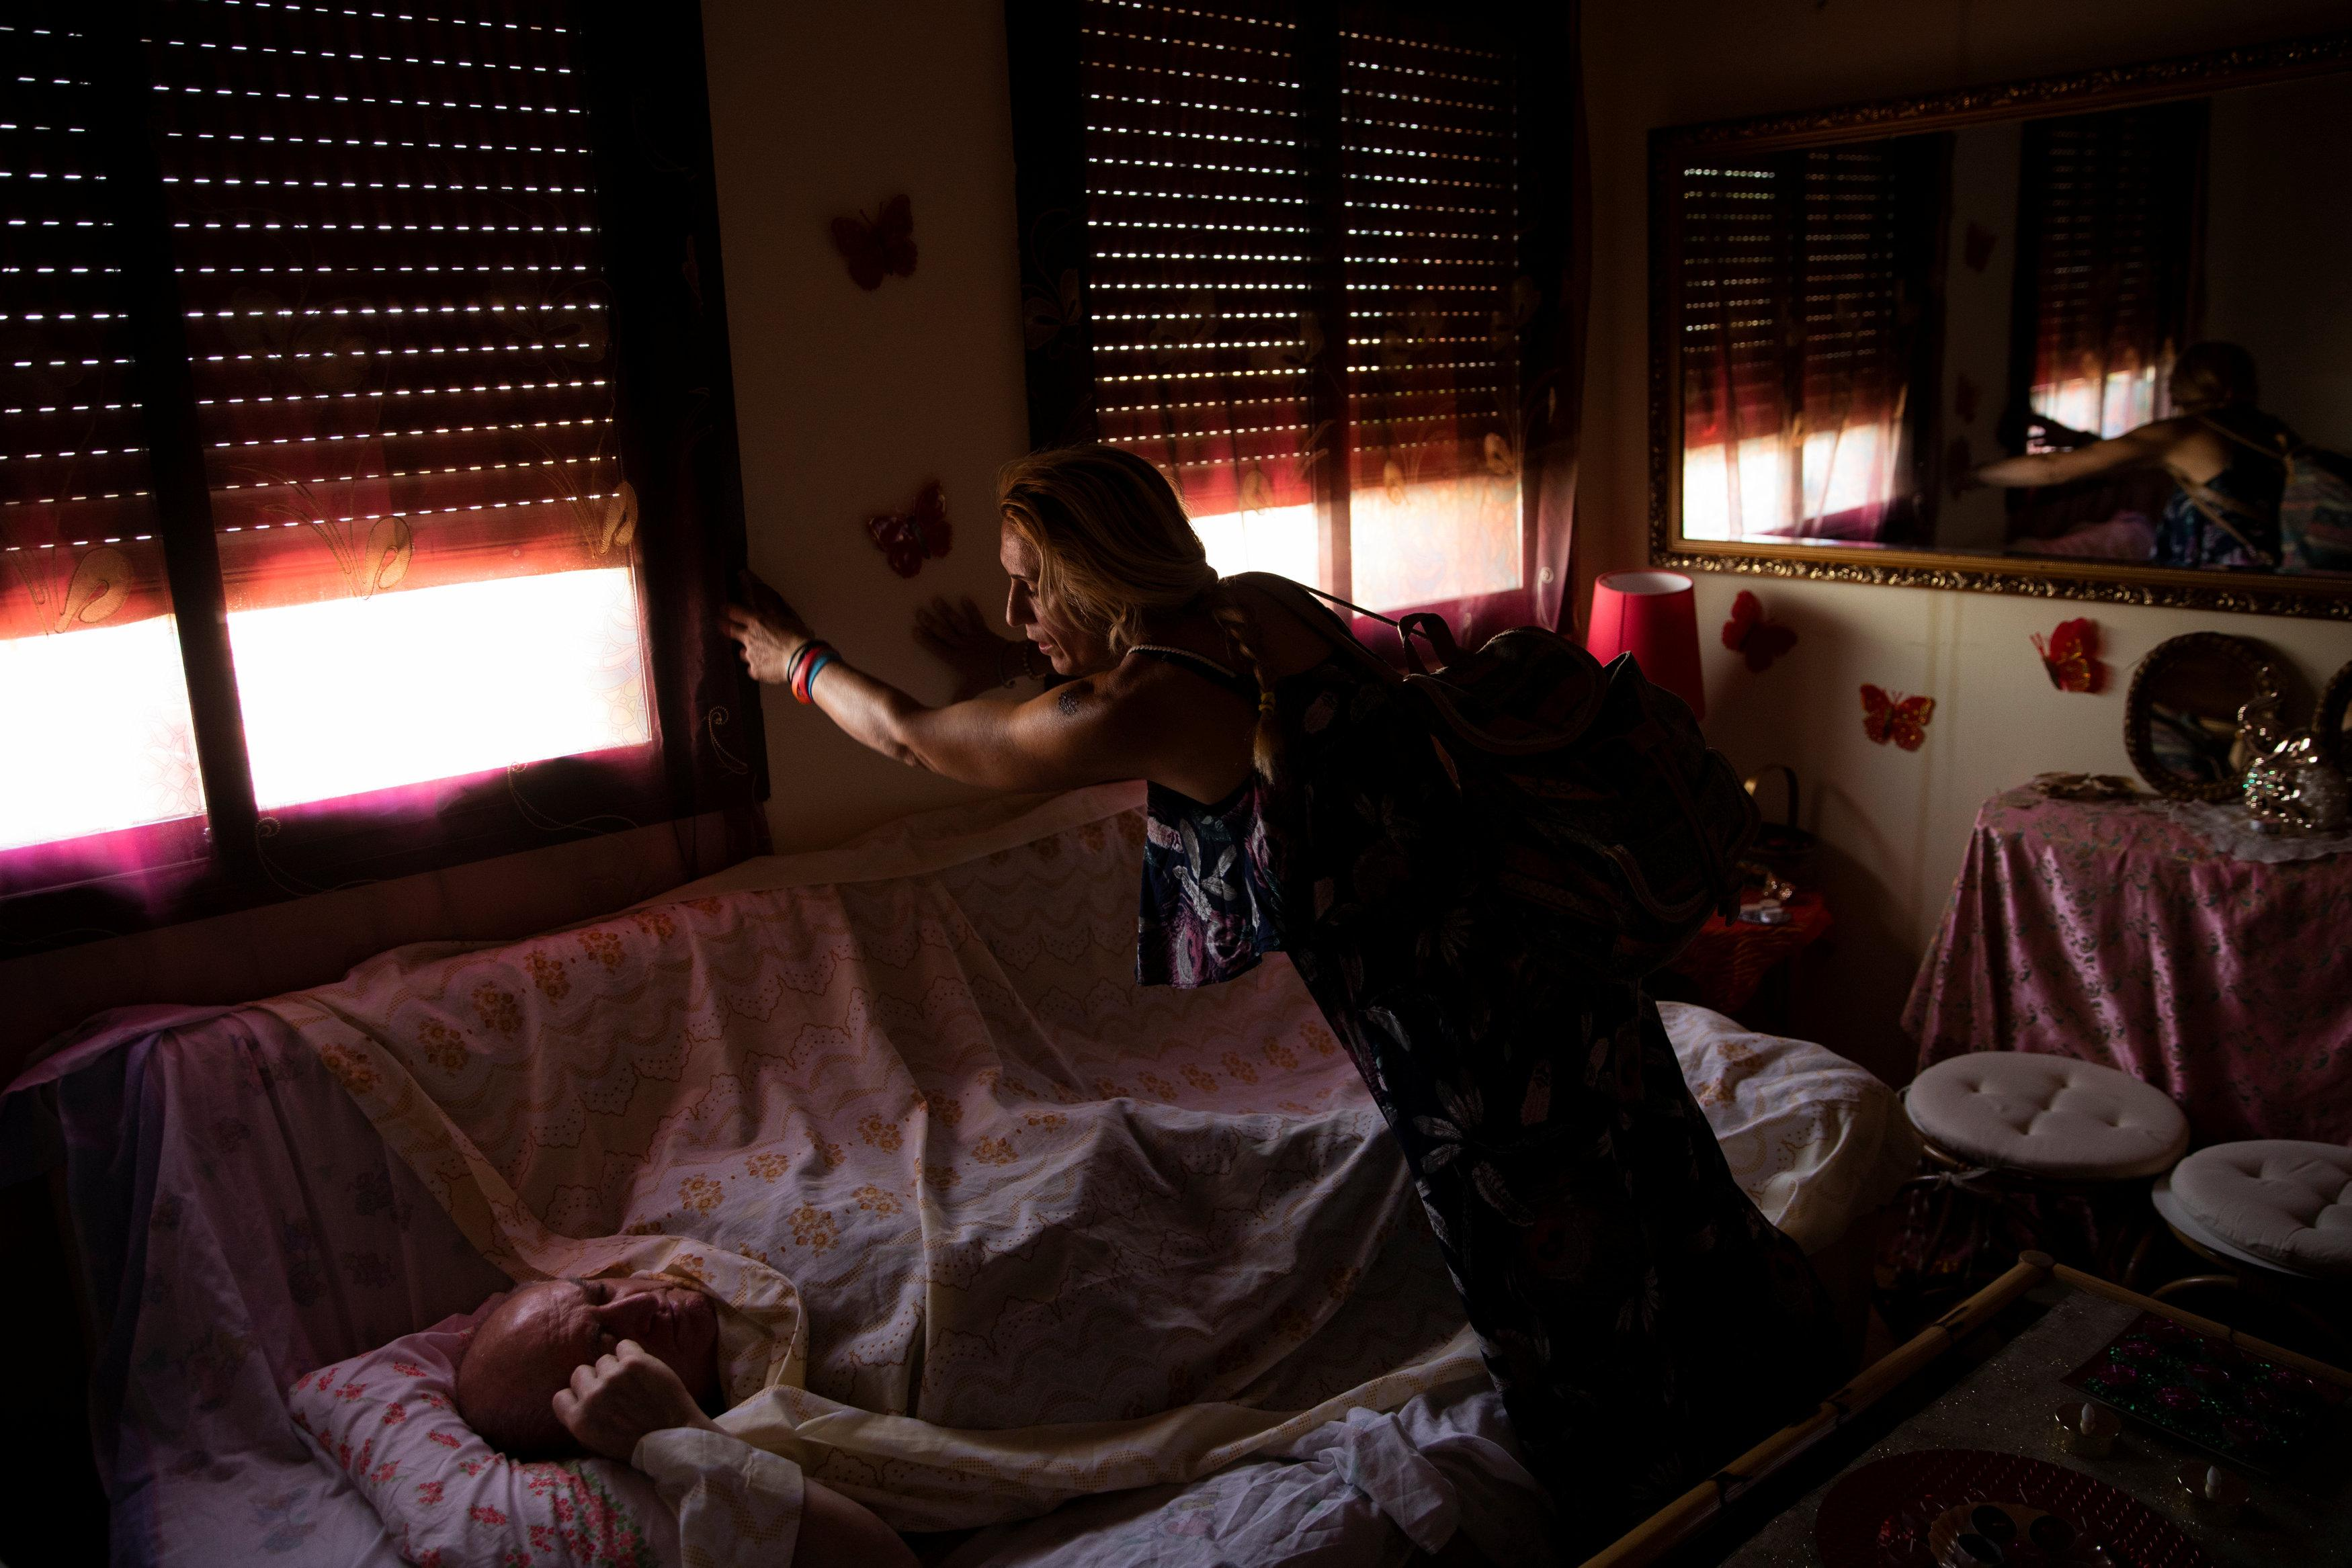 Maria Isabel Rodriguez Romero, 48, lowers the shutters so her father Efren Rodriguez Gonzalez, 74, can sleep in the living room of the home where they are squatting in a village in the province of Toledo, central Spain, August 8, 2018.  Susana Vera